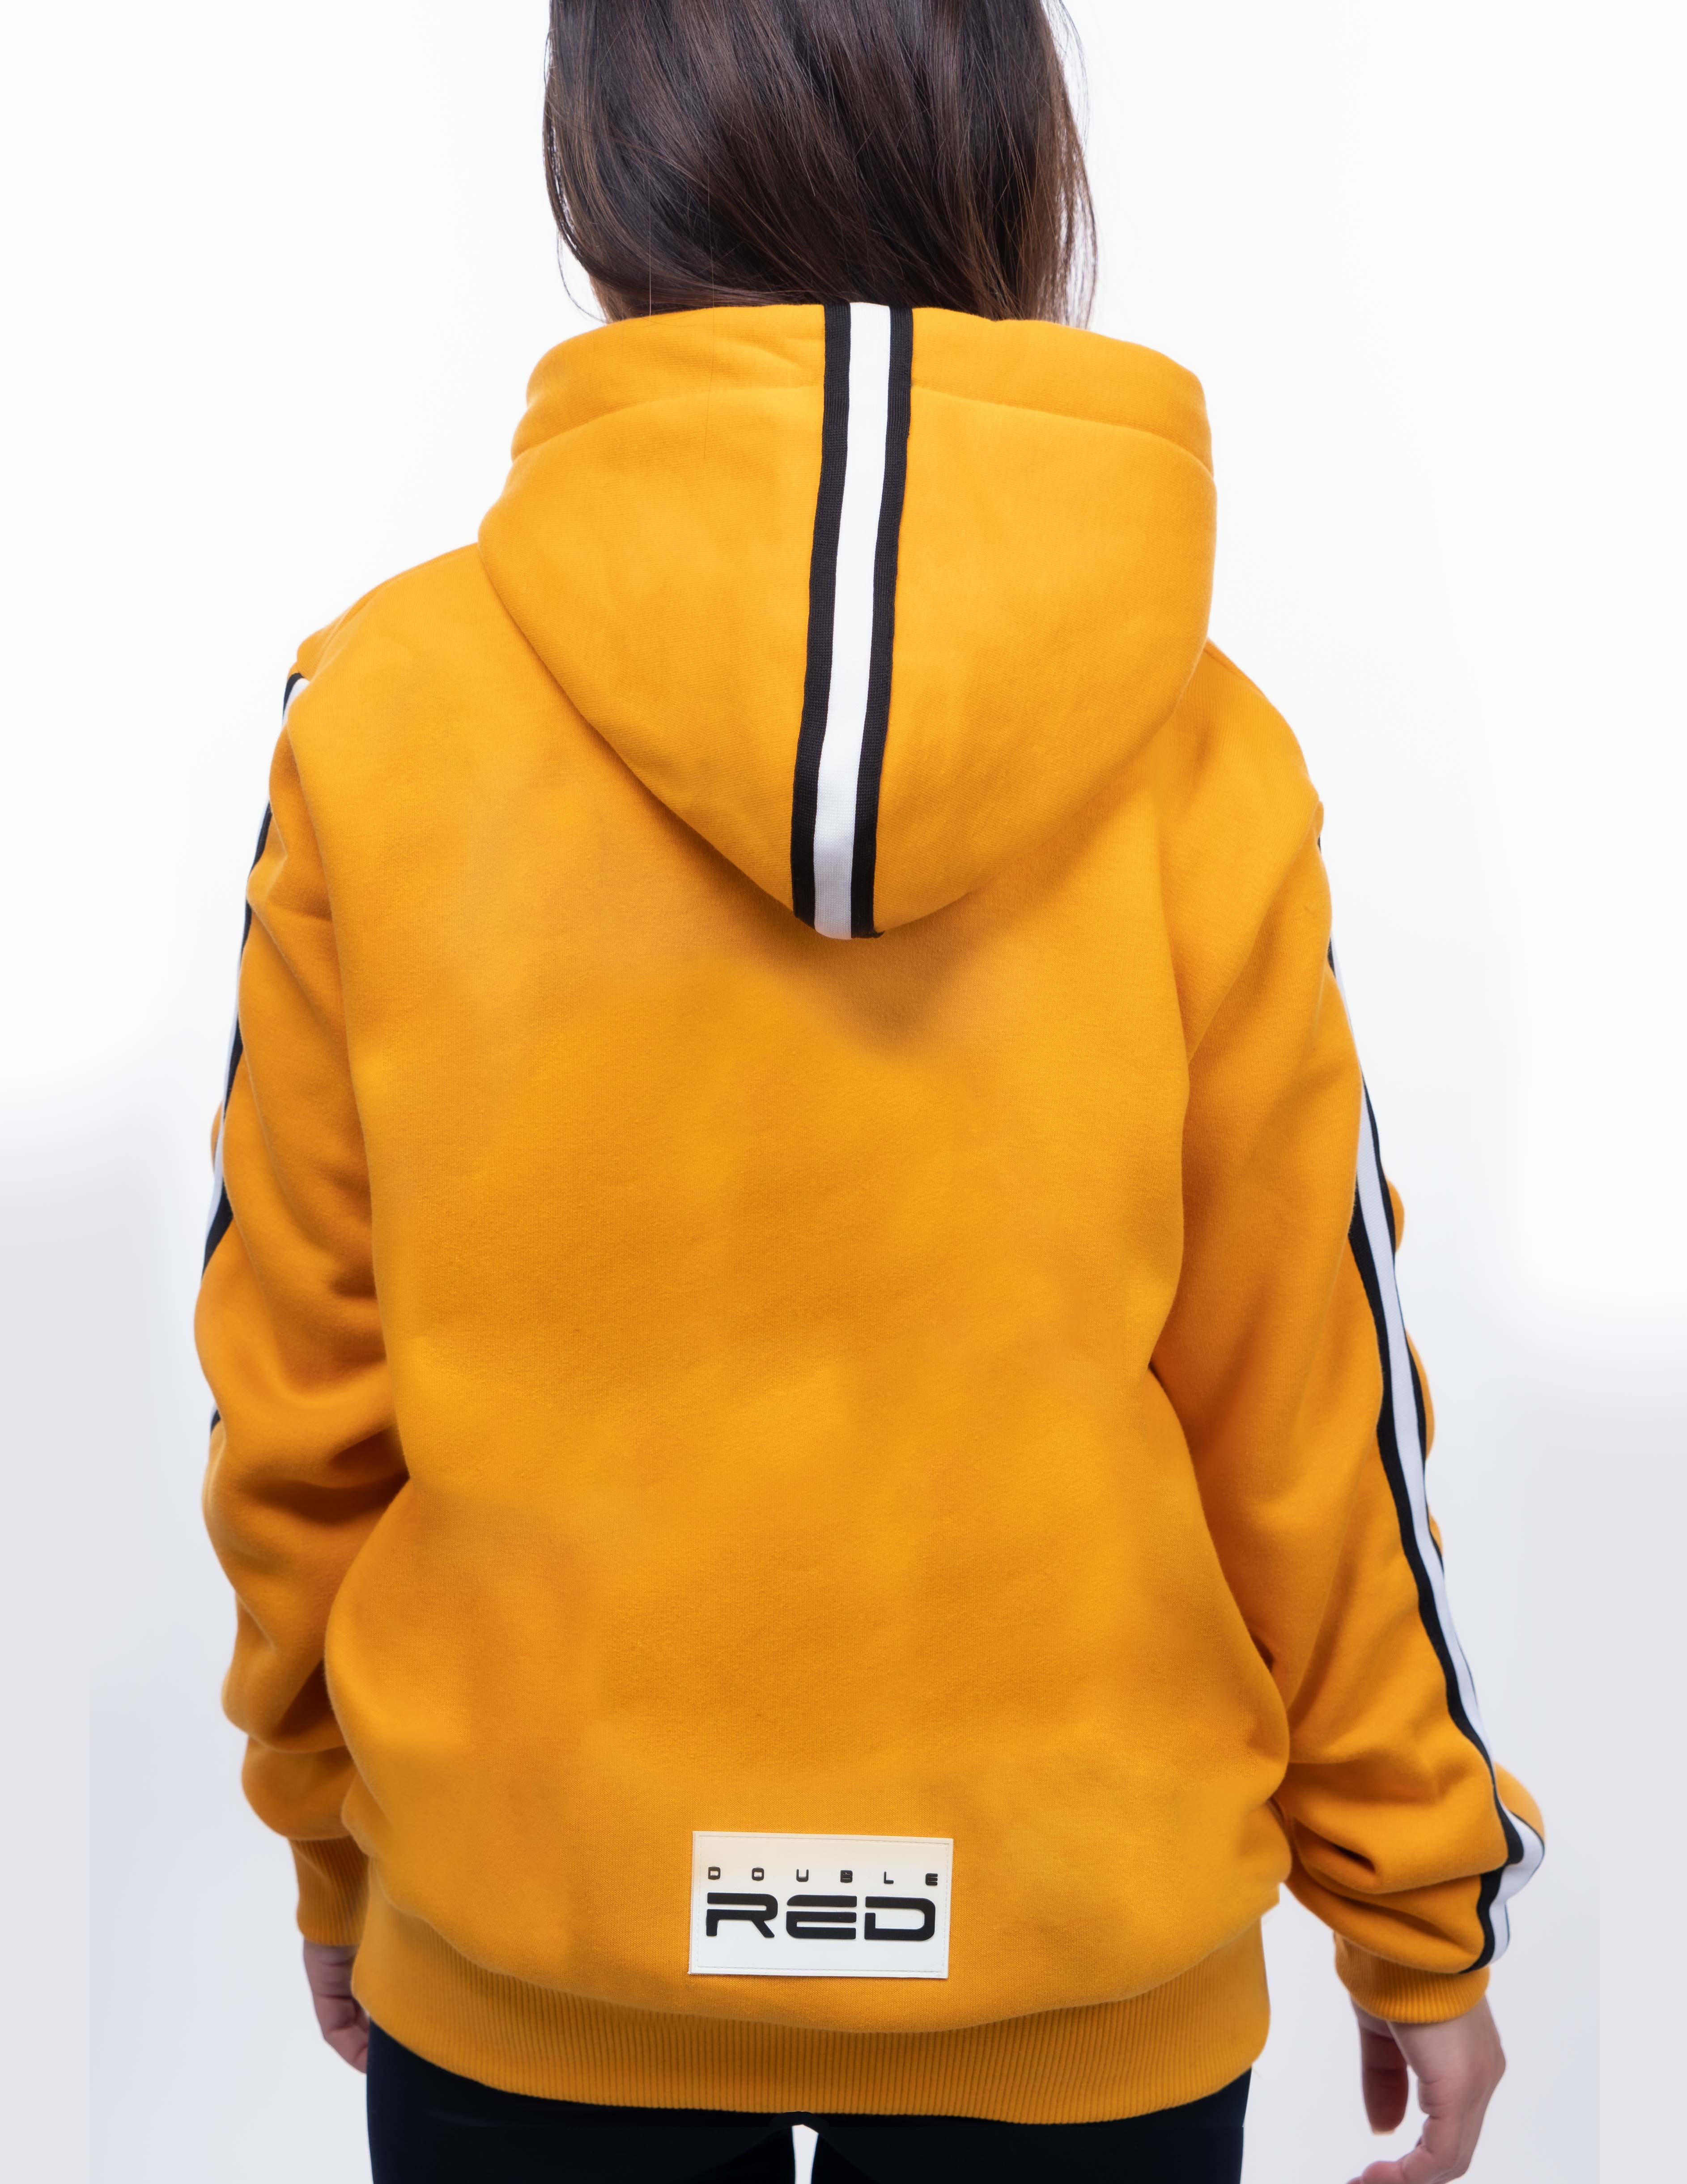 UNISEX OUTSTANDING FCK COVID LIMITED EDITION Hoodie Yellow